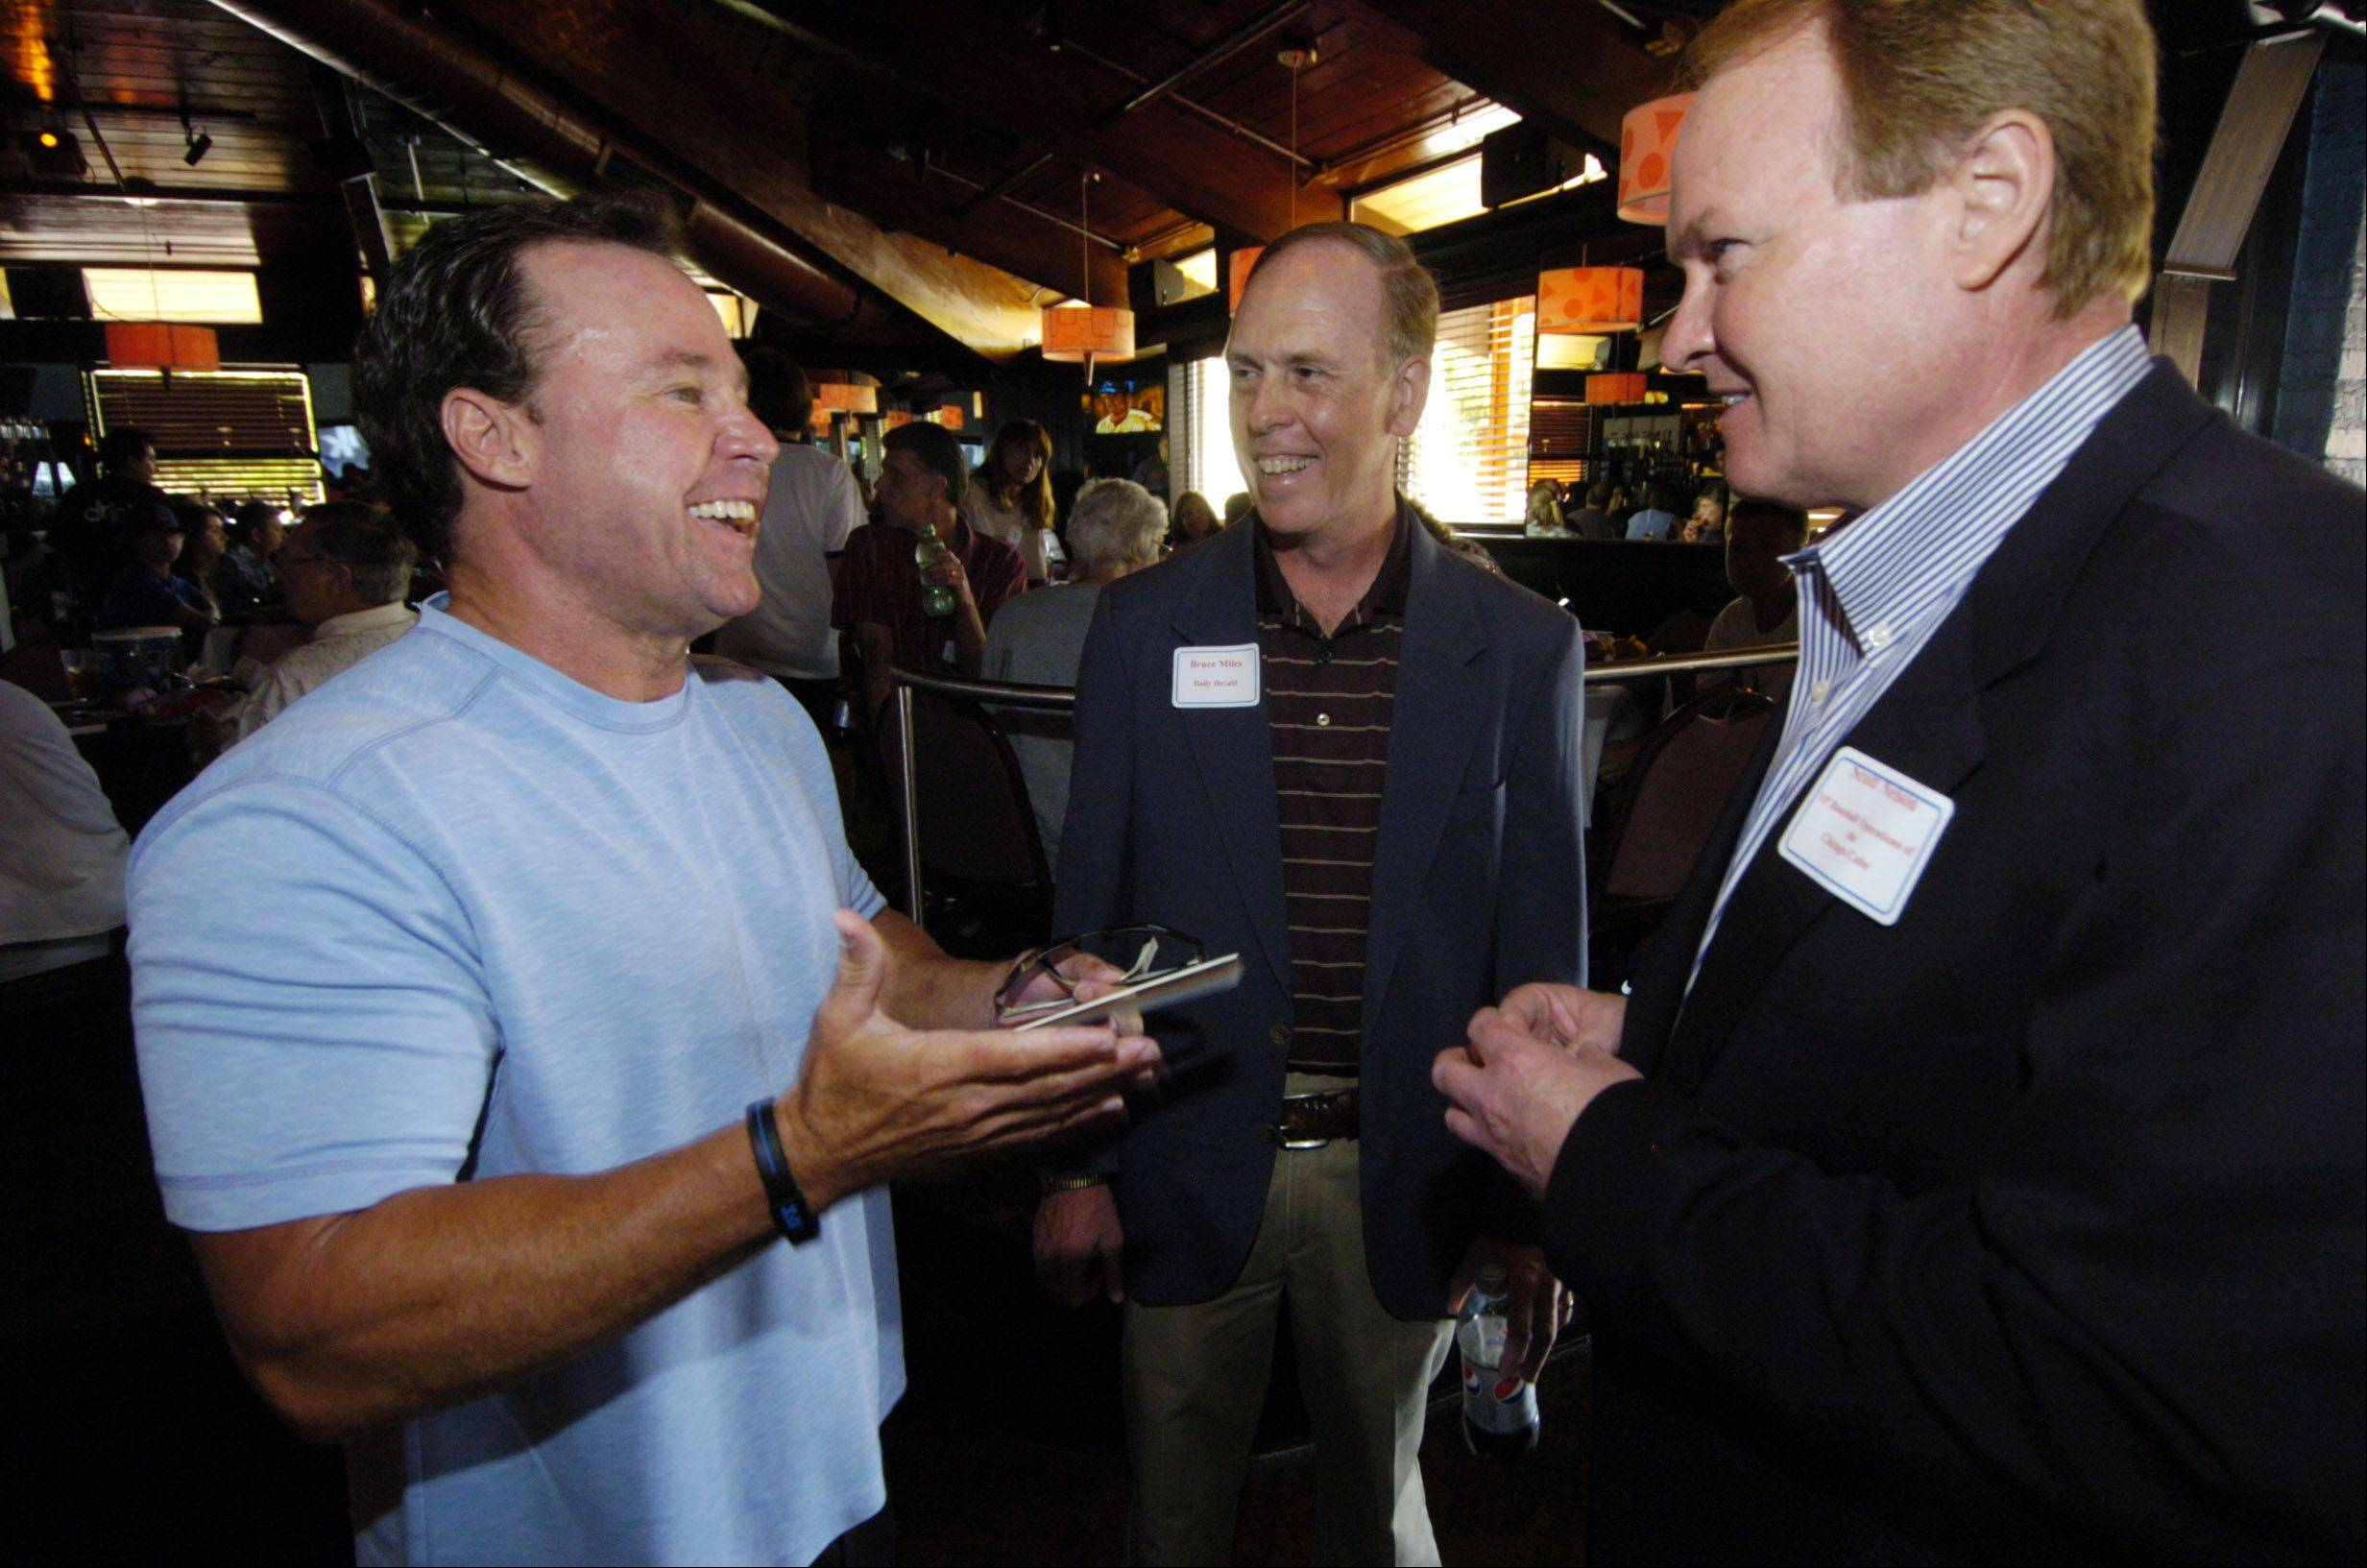 Ron Santo Jr., left, talks with Daily Herald Cubs beat writer Bruce Miles, center, and Scott Nelson, vice president of baseball operations for the Chicago Cubs, during a Subscriber Total Access event.